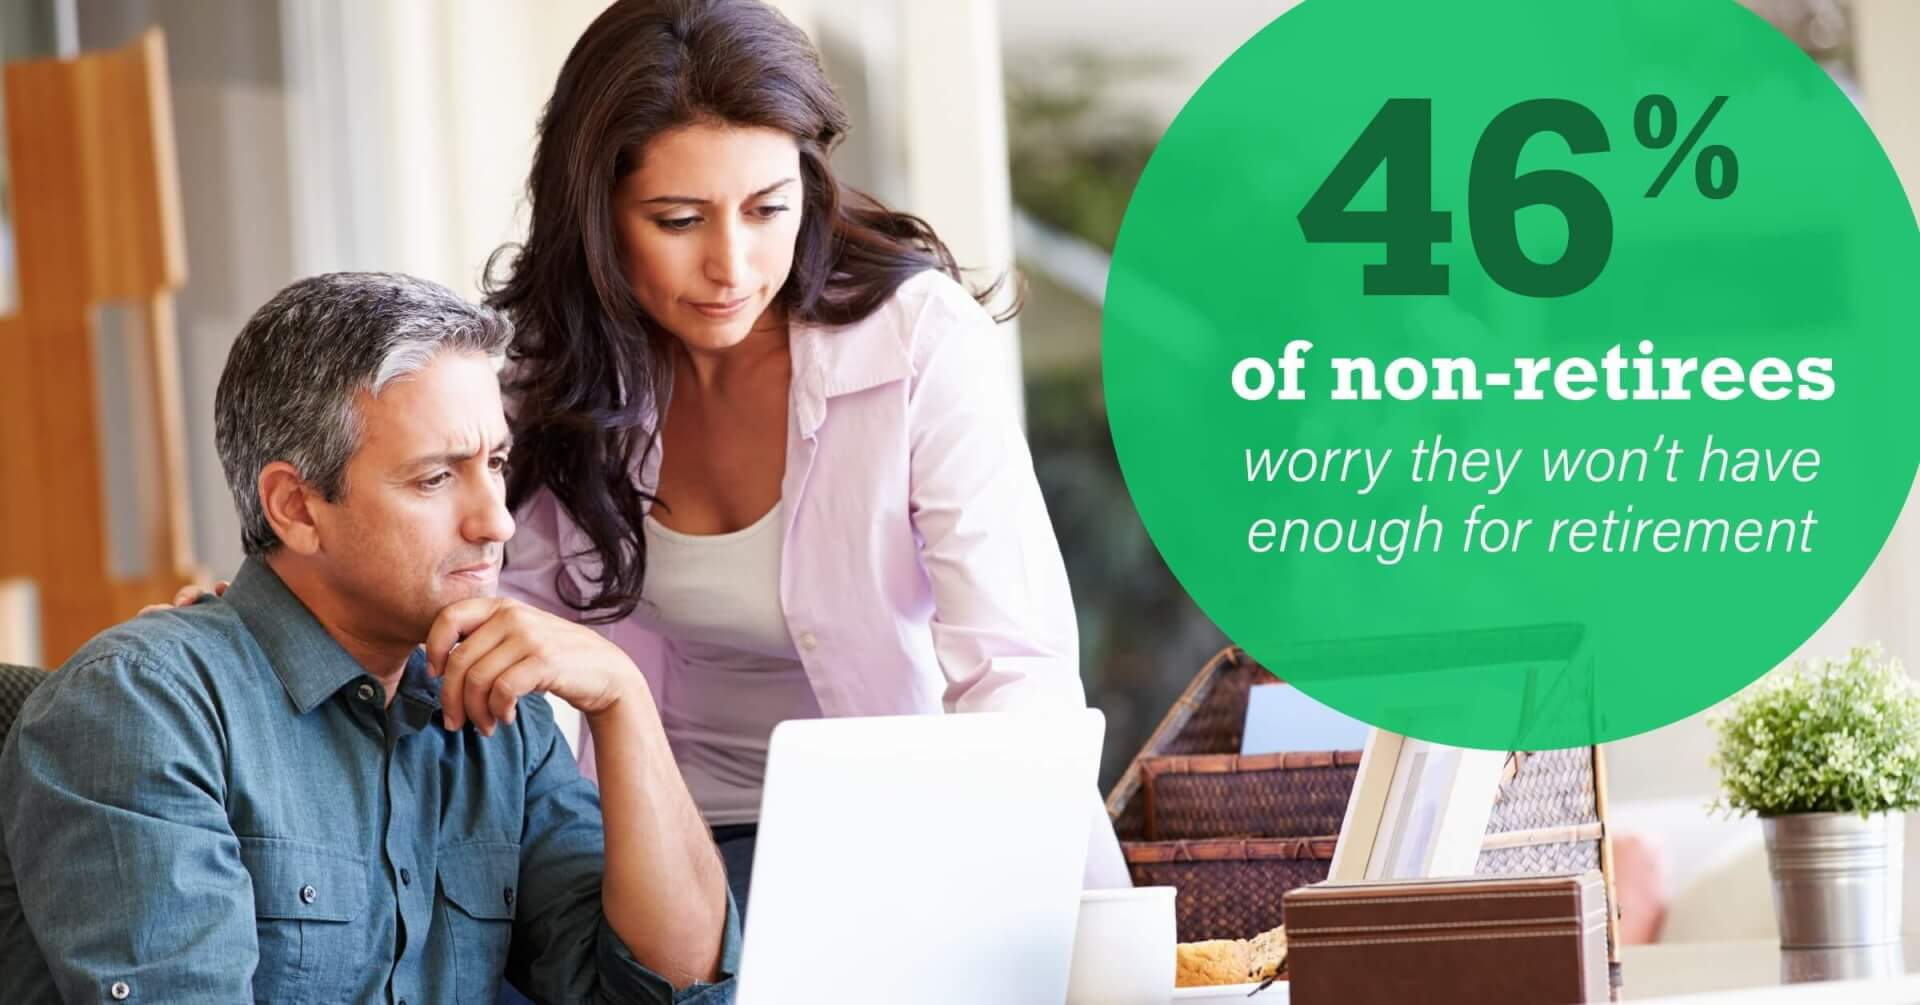 Social Benefits - 46% of Non-Retirees Worry They Won't Have Enough for Retirement